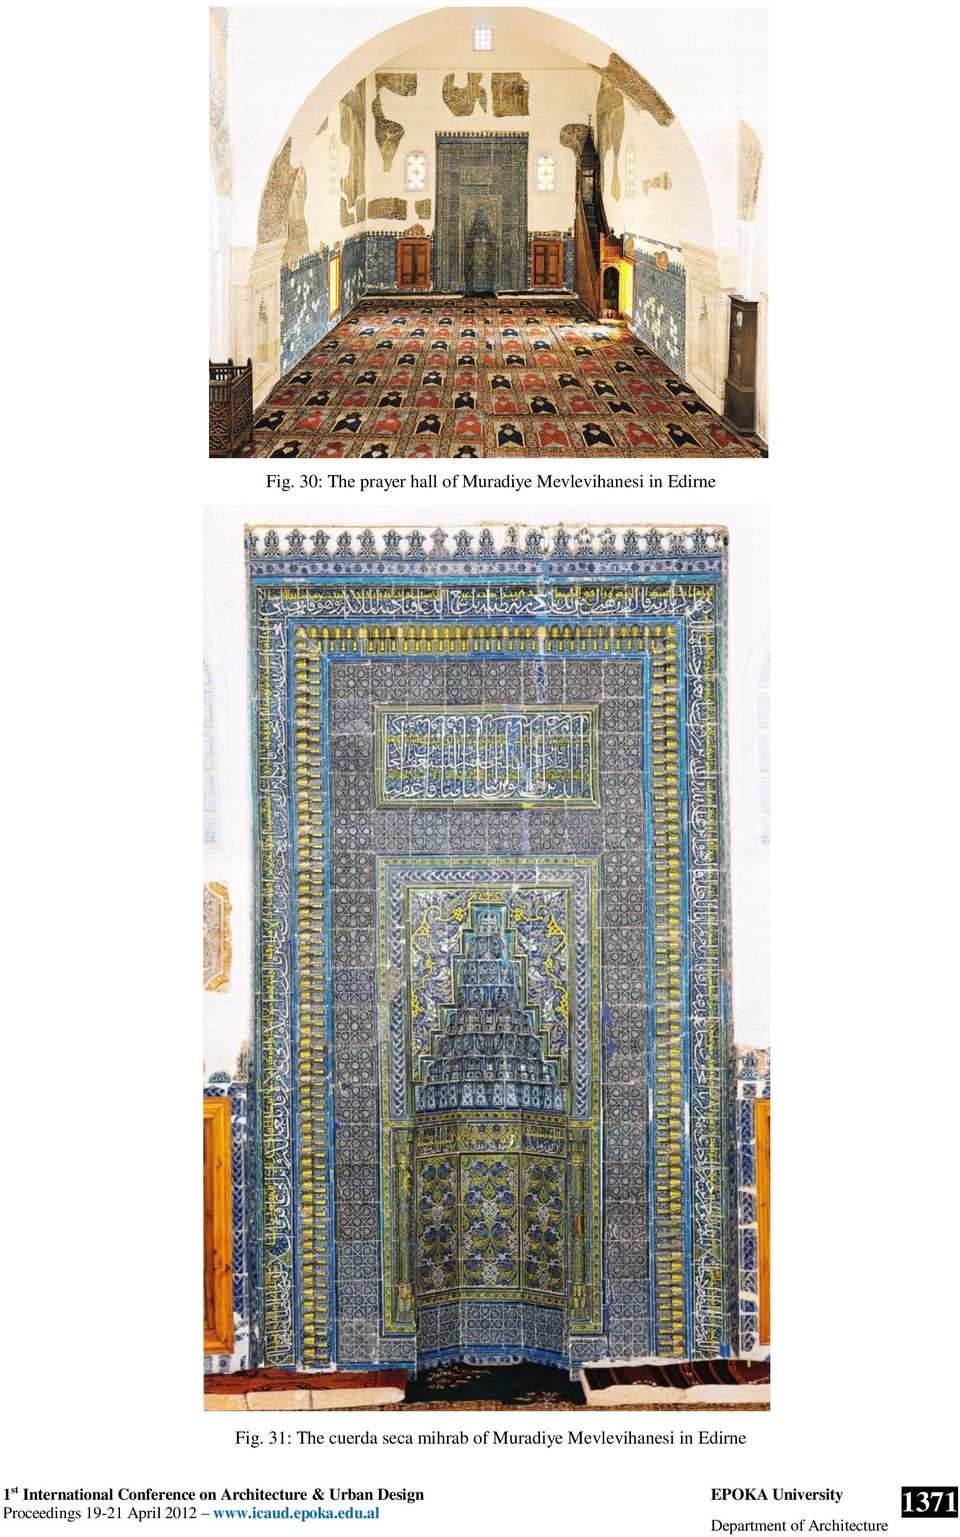 Fig. 31: The cuerda seca mihrab